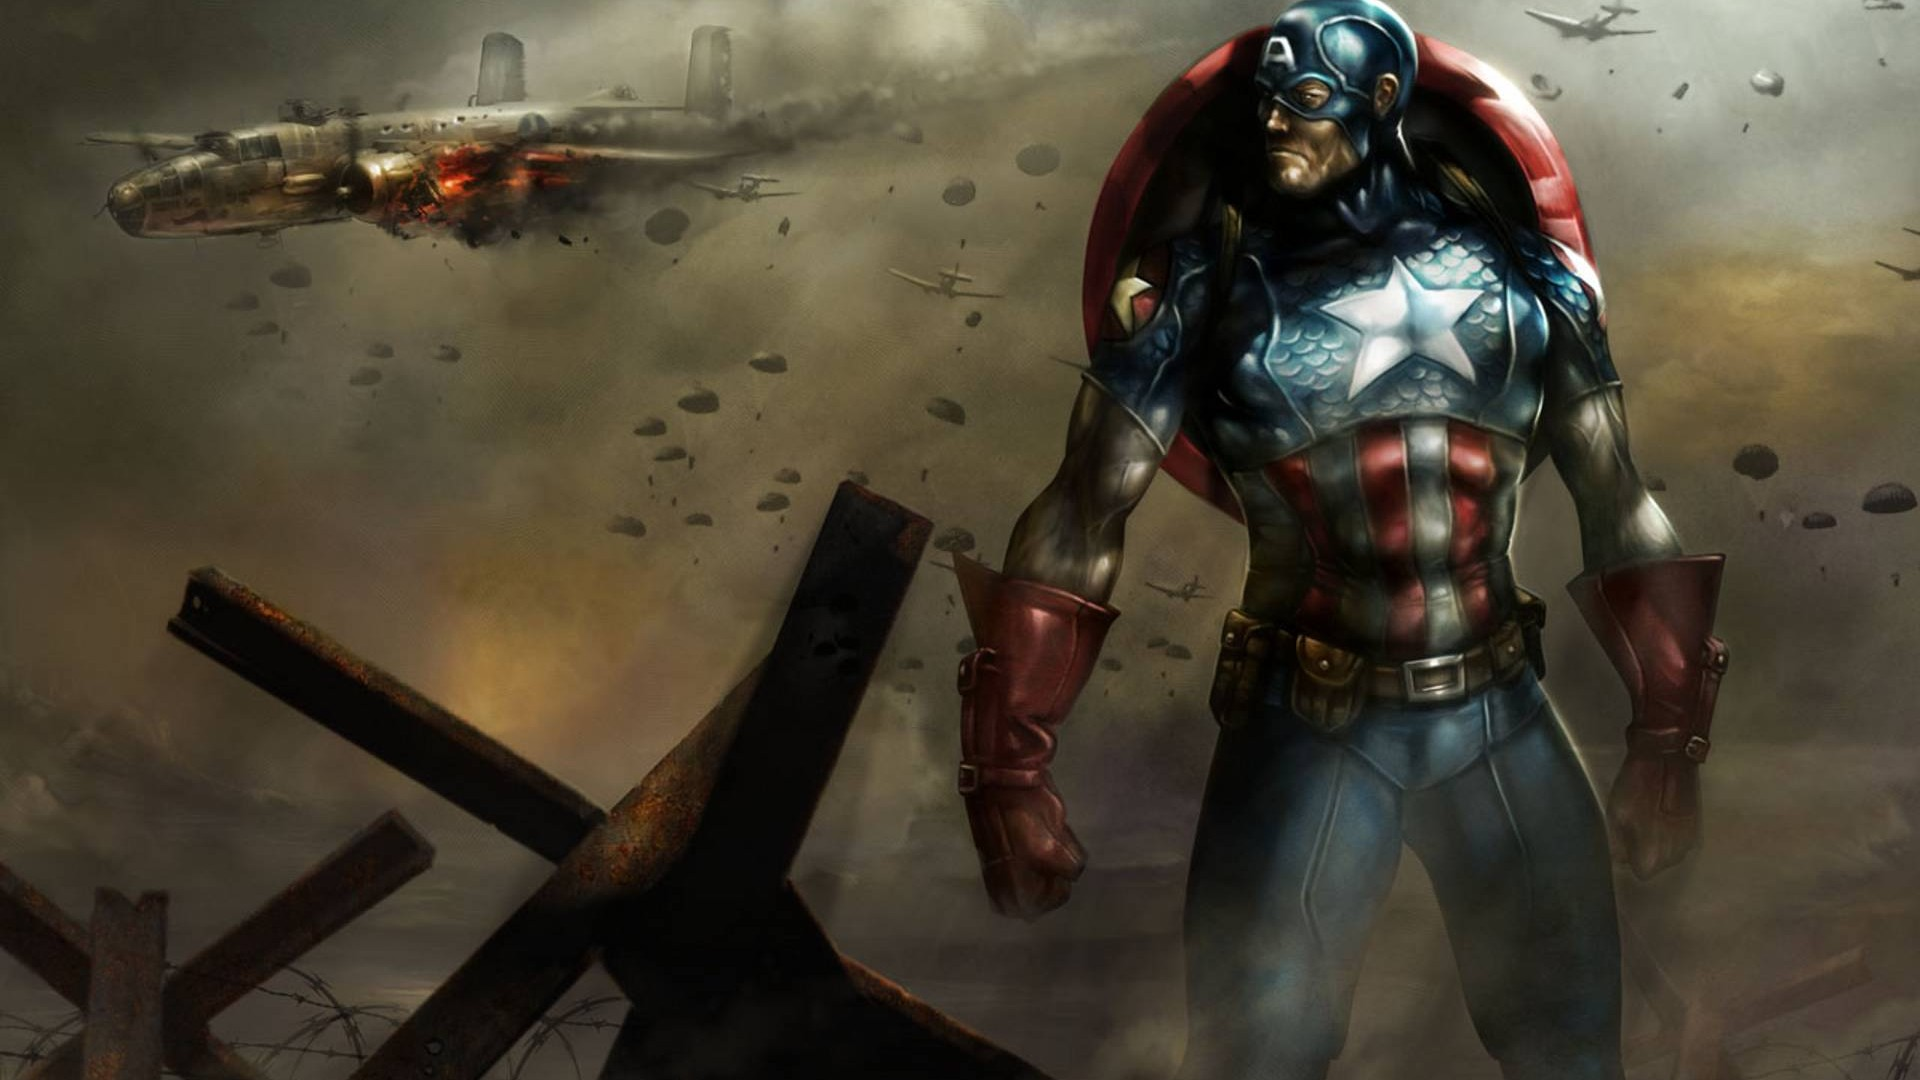 fonds d'écran captain america : tous les wallpapers captain america